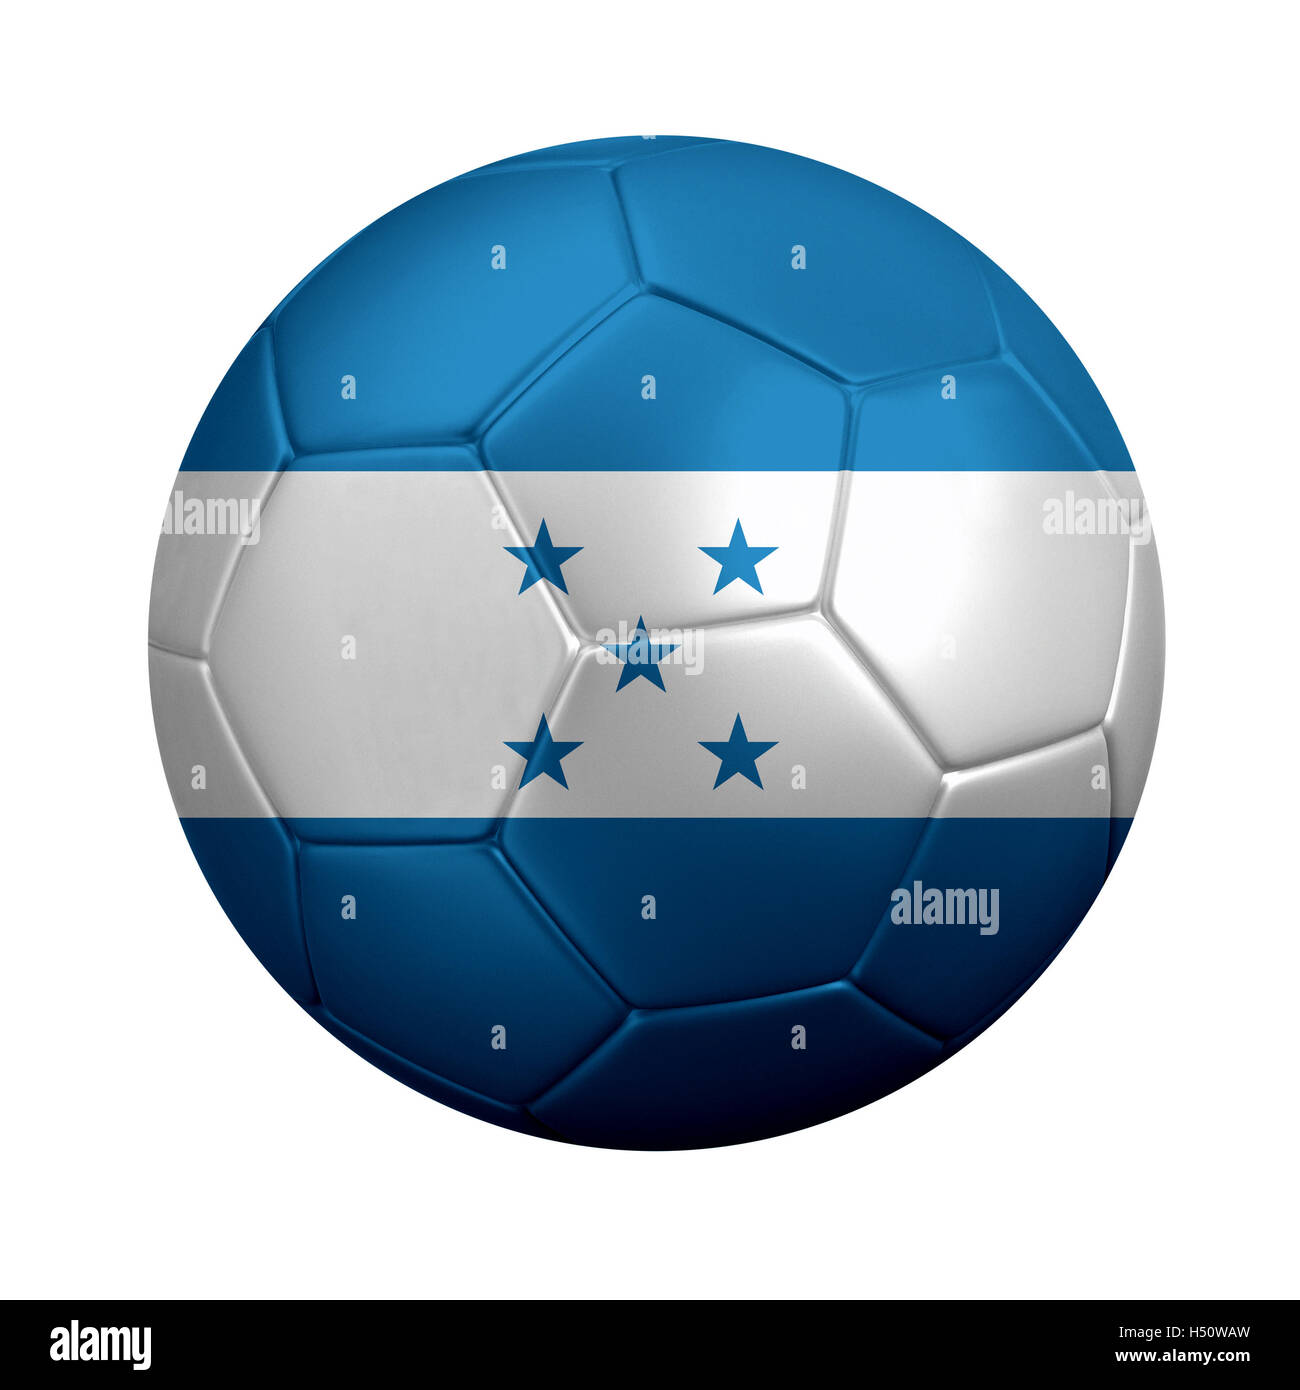 3D rendering of soccer ball wrapped in Honduras' national flag. Isolated on white background. Stock Photo